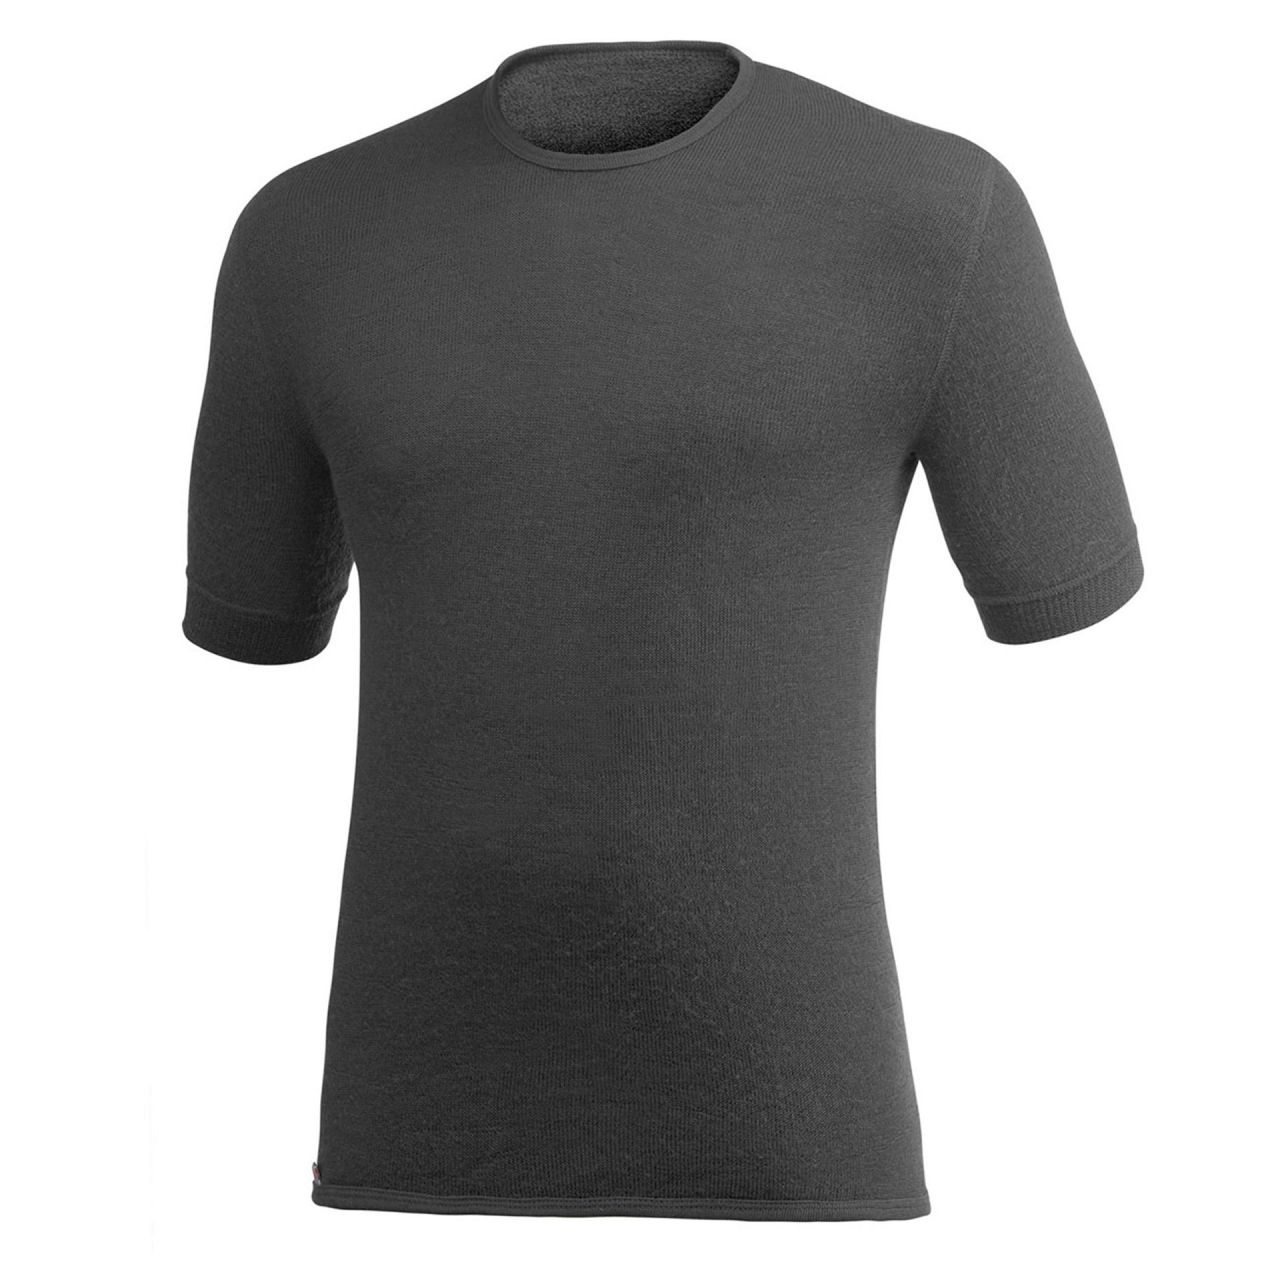 "WOOLPOWER T-Shirt, Modell ""TEE 200"" Grey"